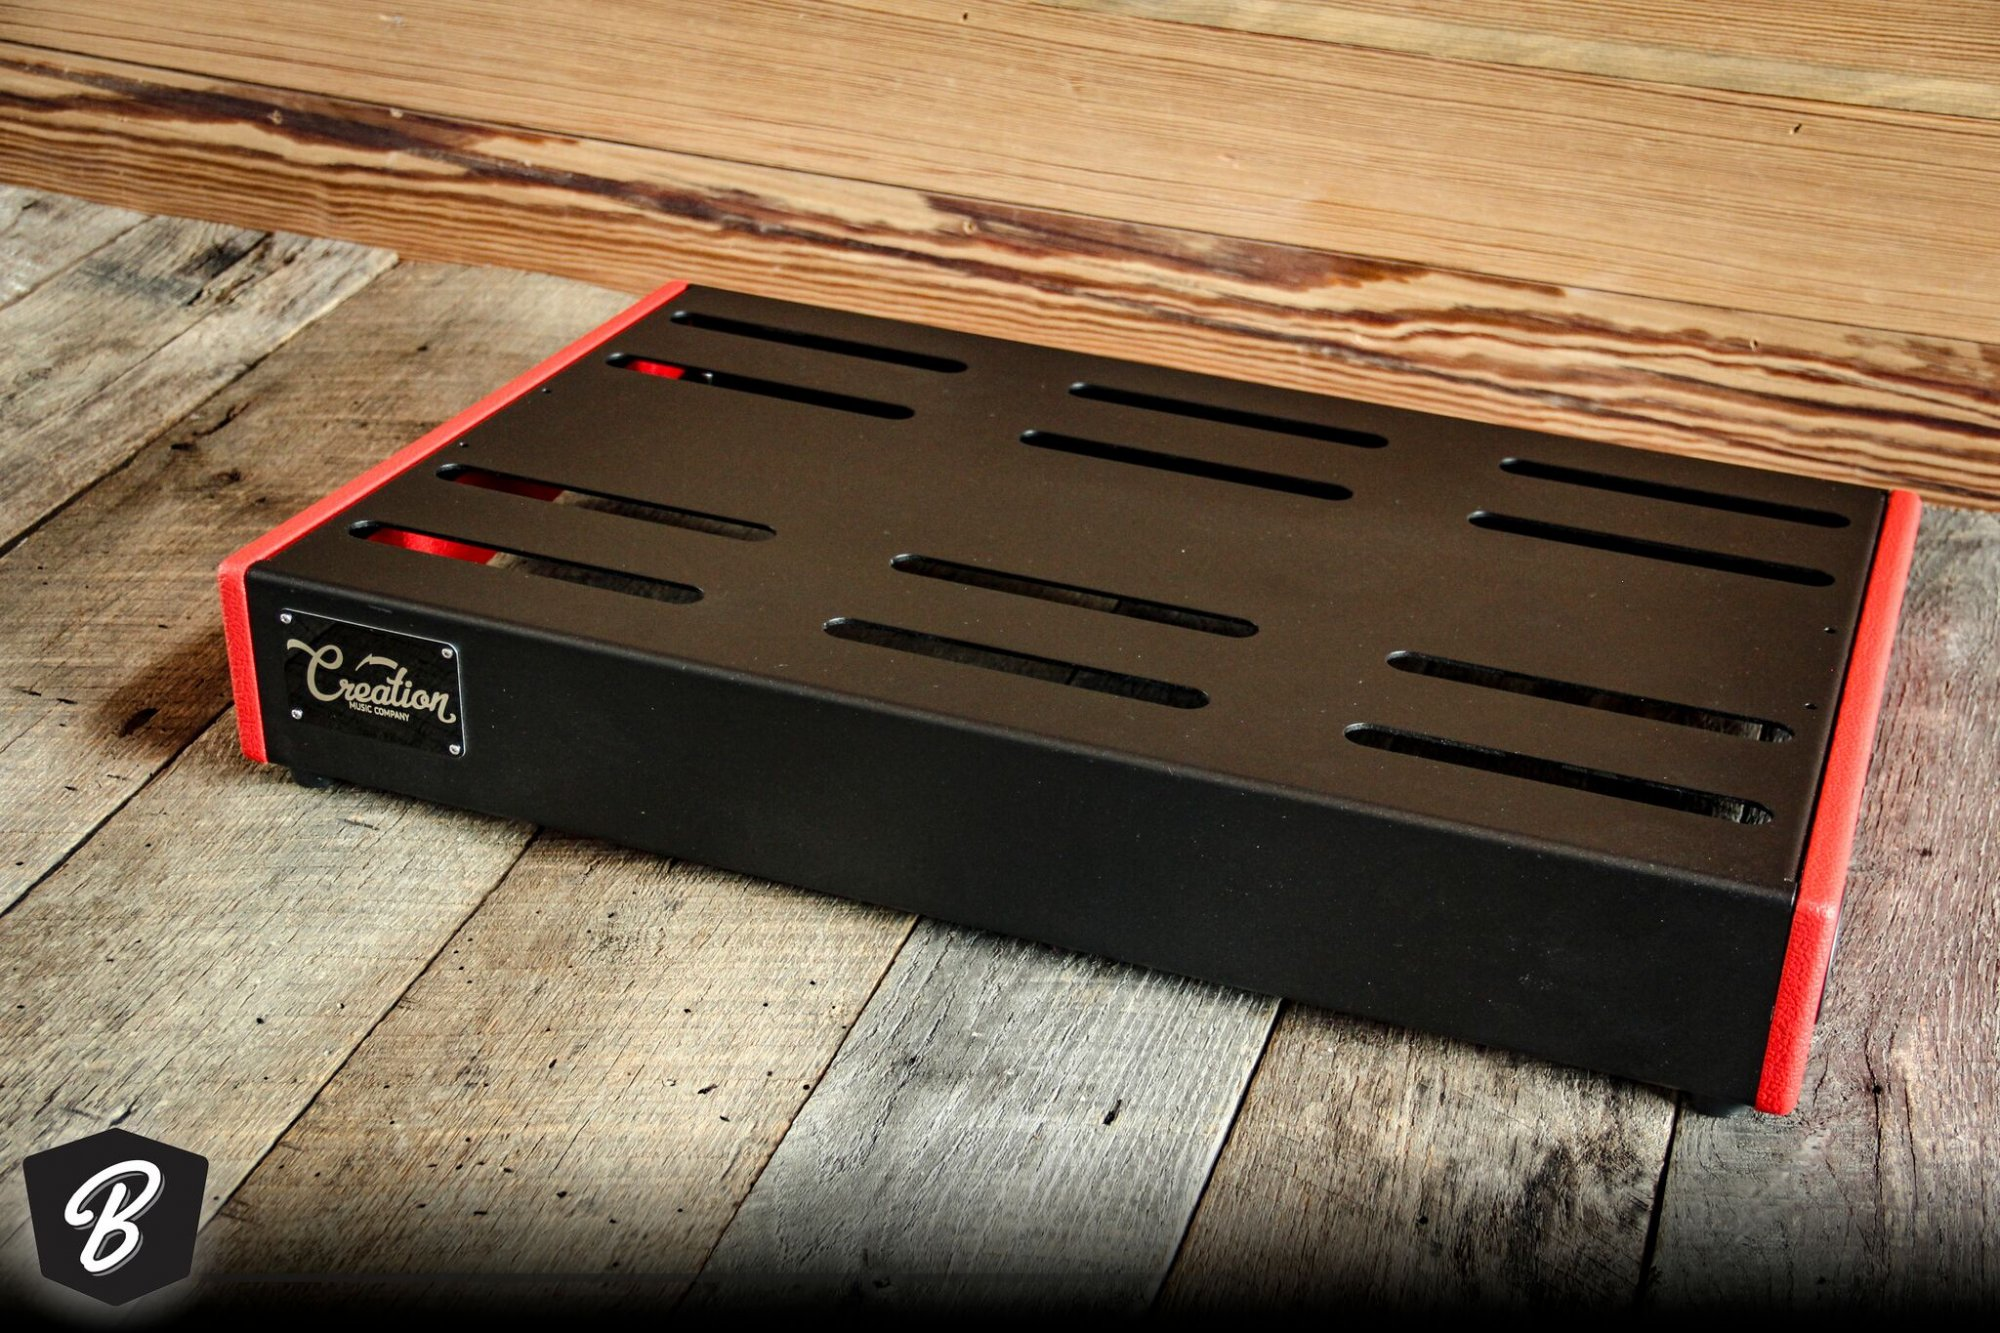 Creation Music Company 32 x 16 Elevation Series Board Red Tolex